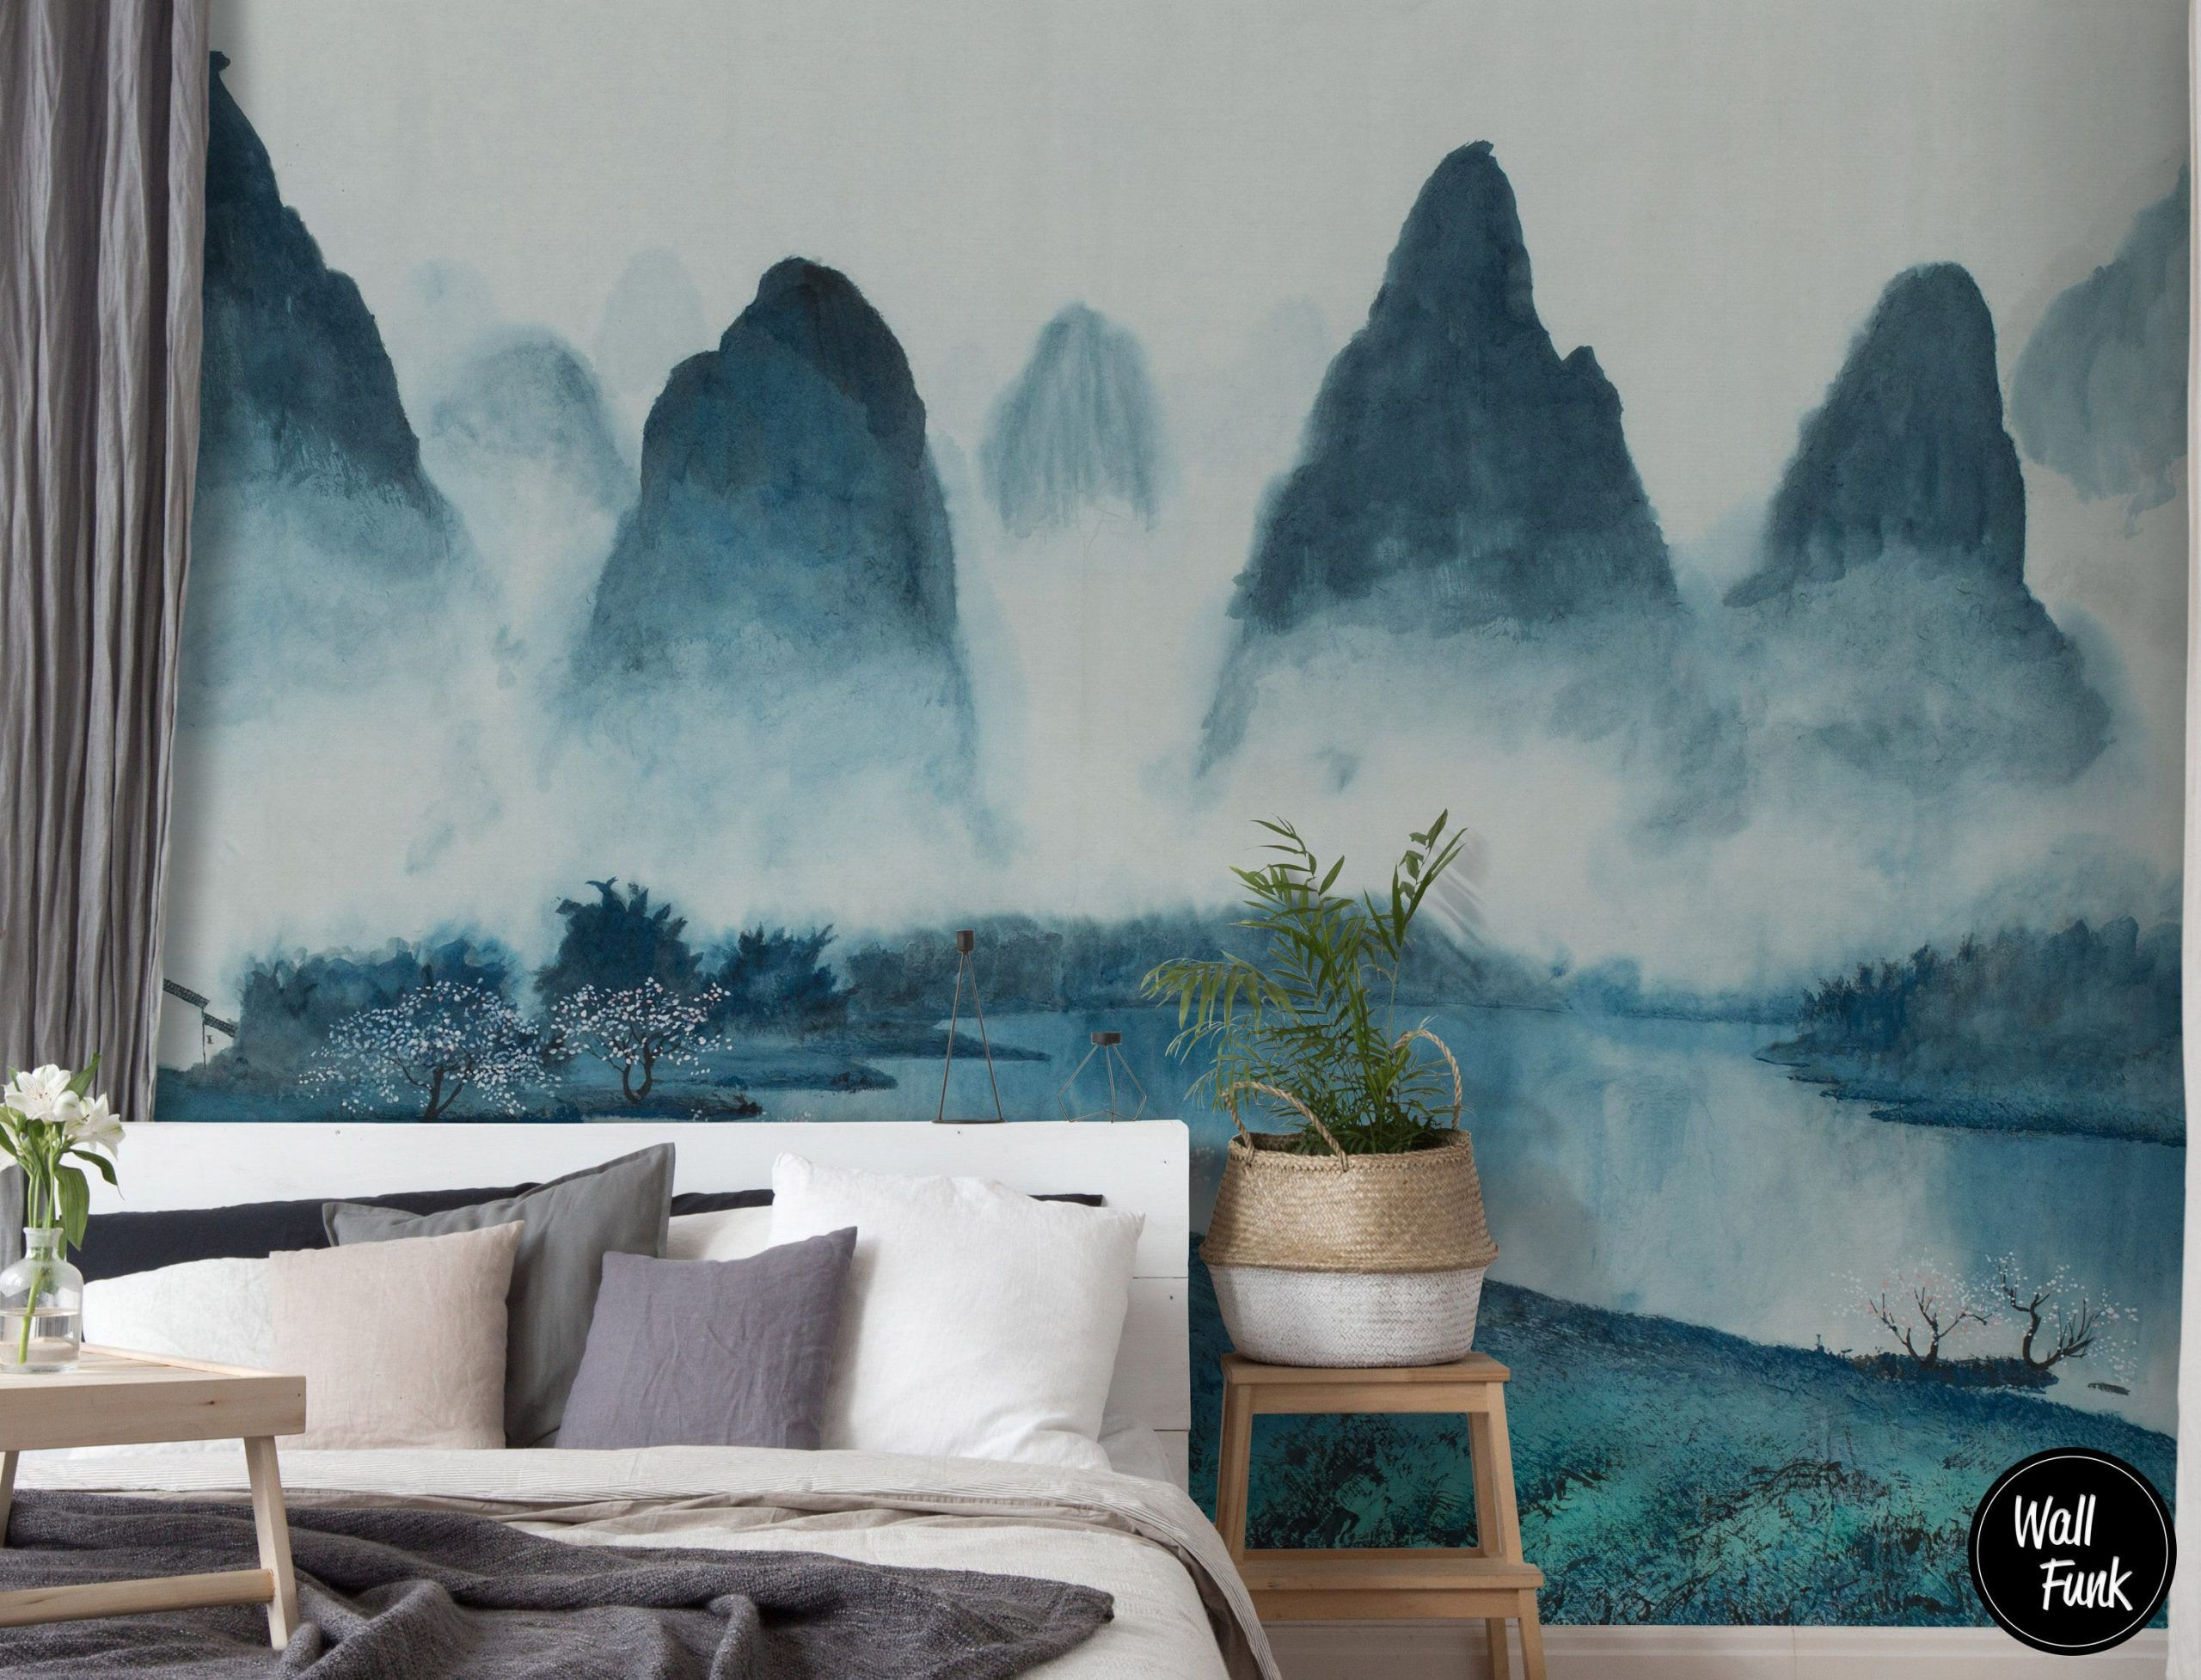 Removable Wallpaper Made With Recycled Paper Easy To Install Water Activated Adhesive Wallpaper Removable Cloud Wallpaper Wallpaper Decor Removable Wallpaper